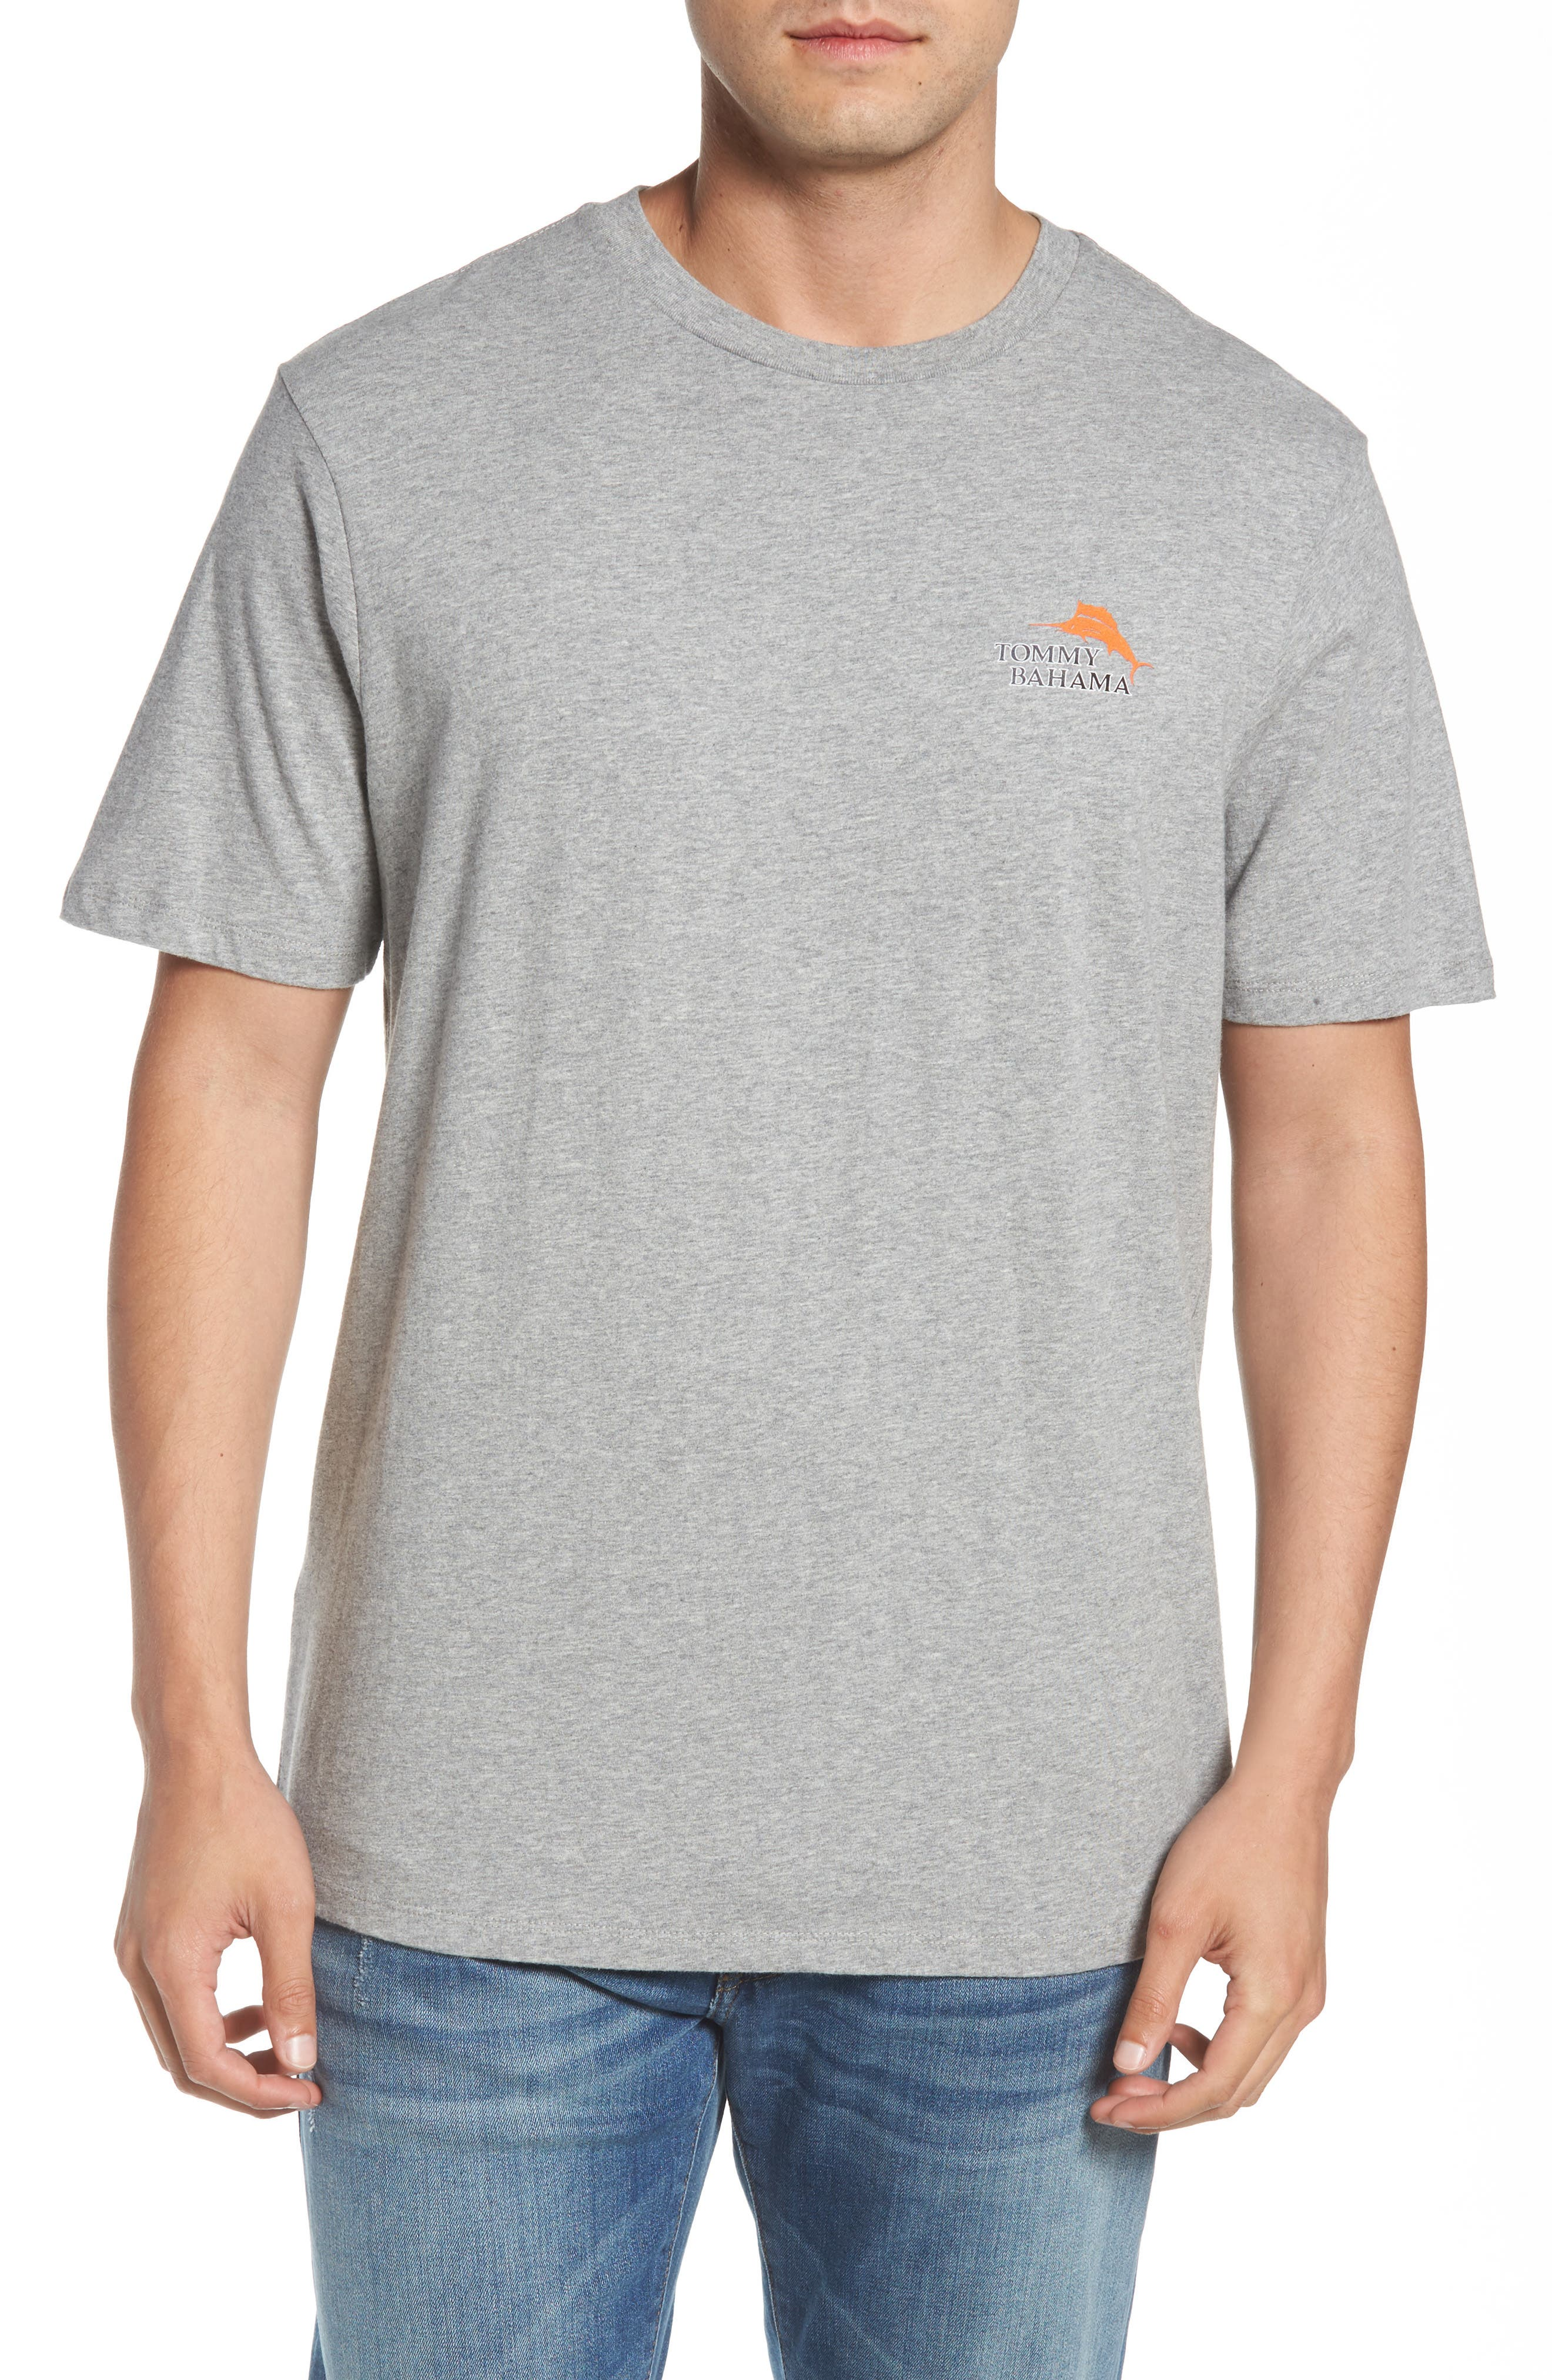 Head Count T-Shirt,                         Main,                         color, Grey Heather